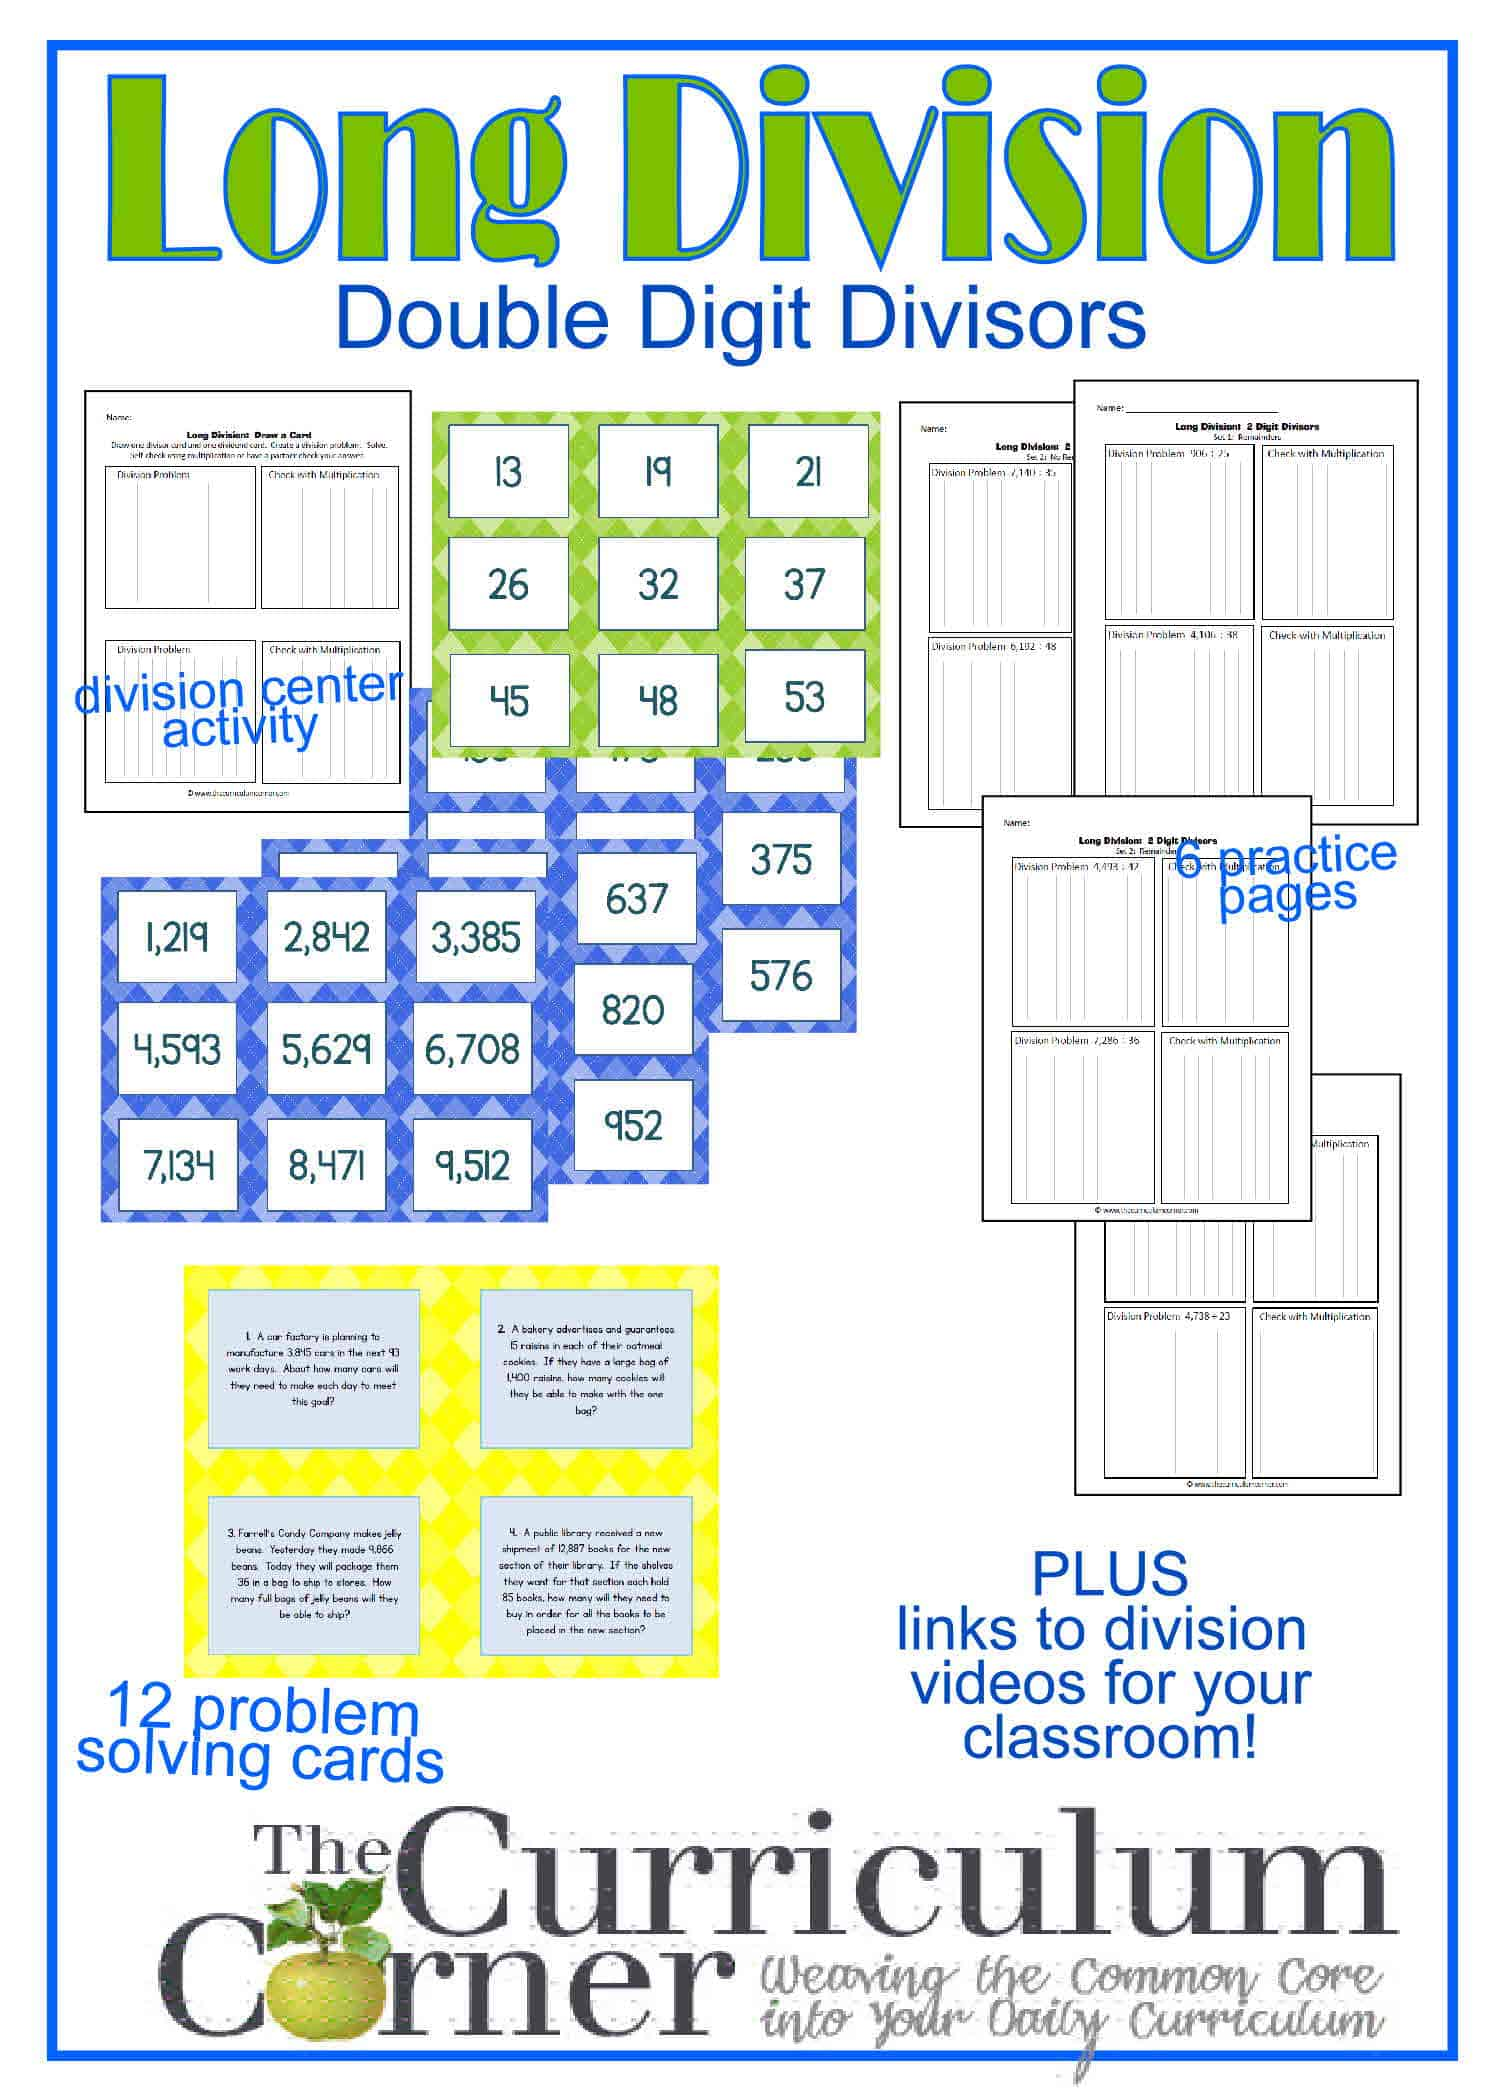 Long Division Resources (2-Digit Divisor)